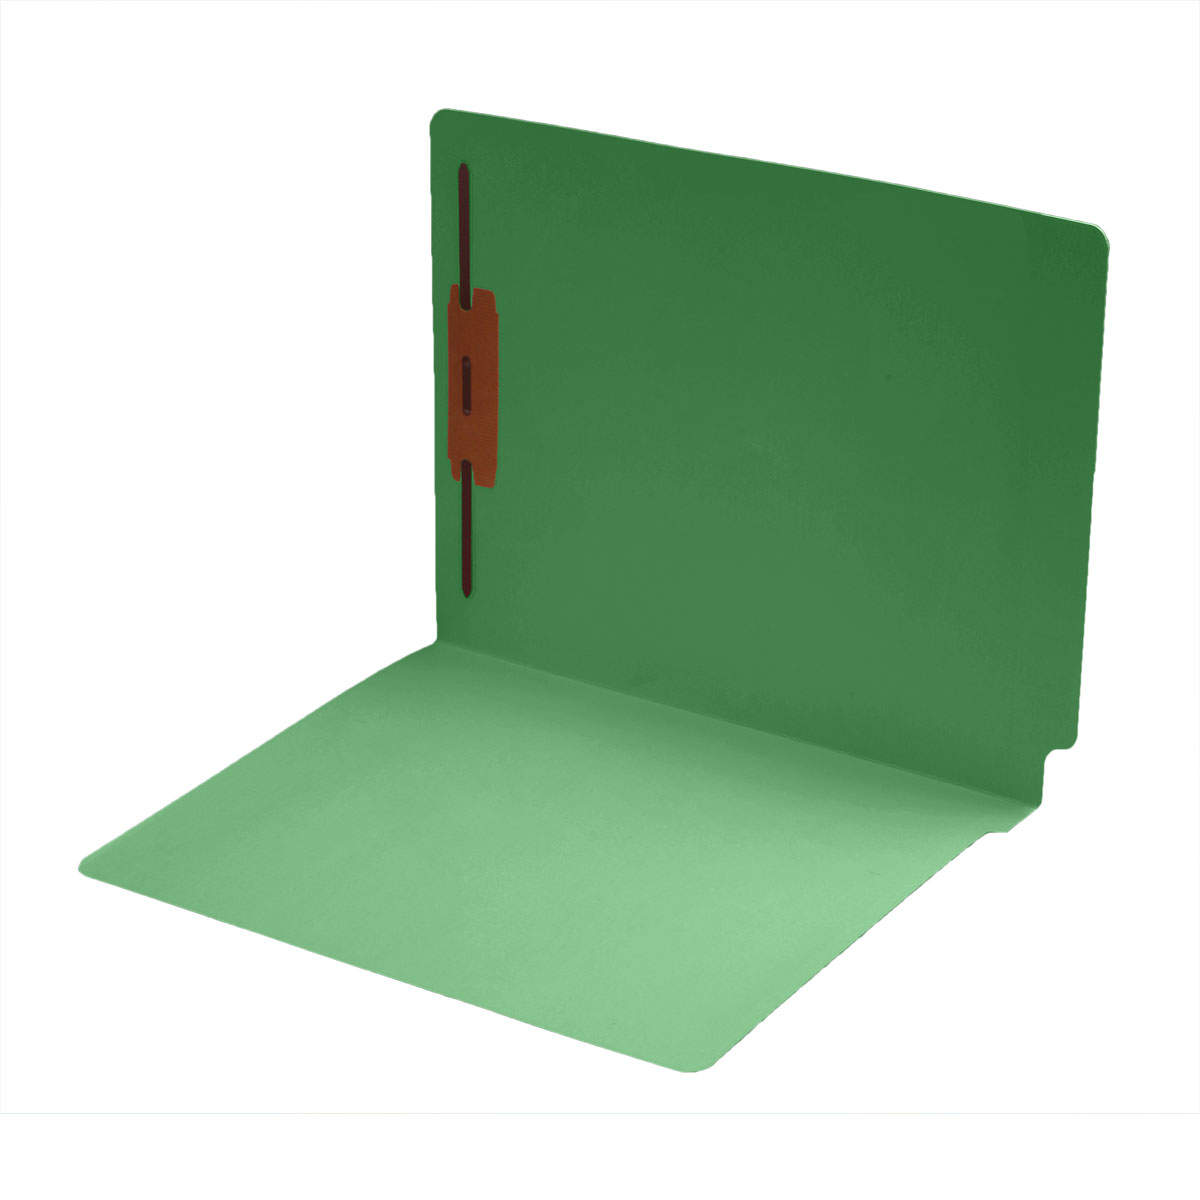 S-1601-GRN - 14 pt Color Folders, Full Cut 2-Ply End Tab, Letter Size, Fastener Pos #1, Green (Box of 50)